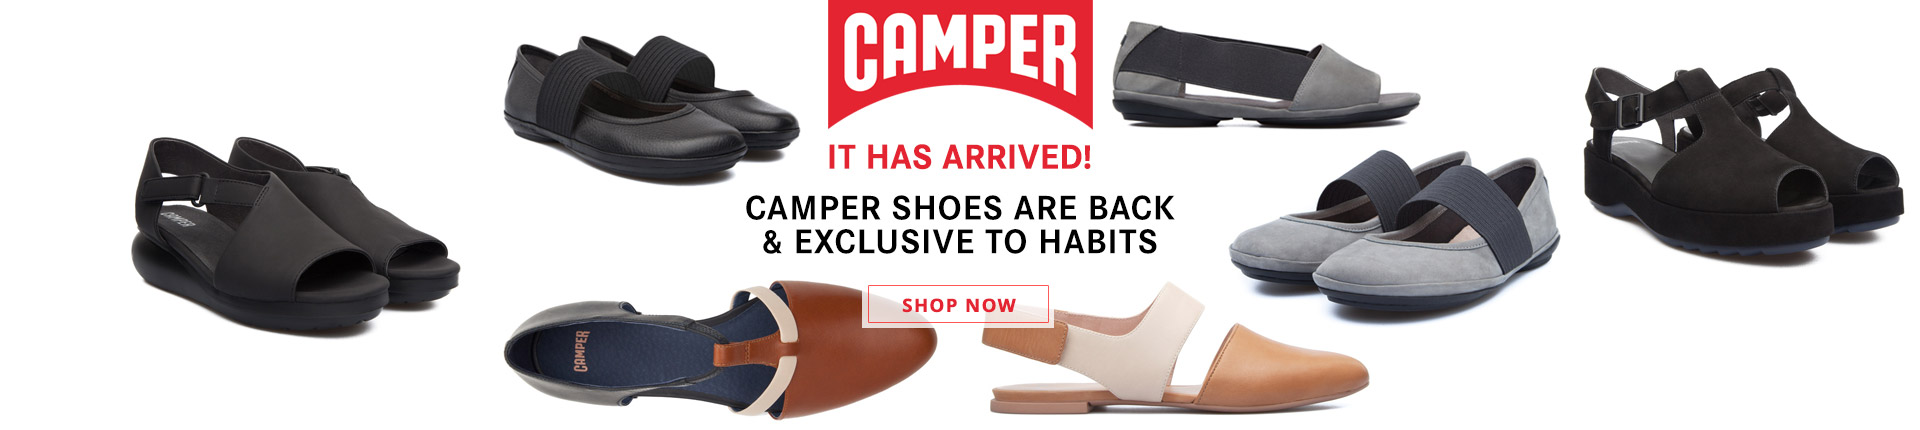 Camper Shoes at Habits